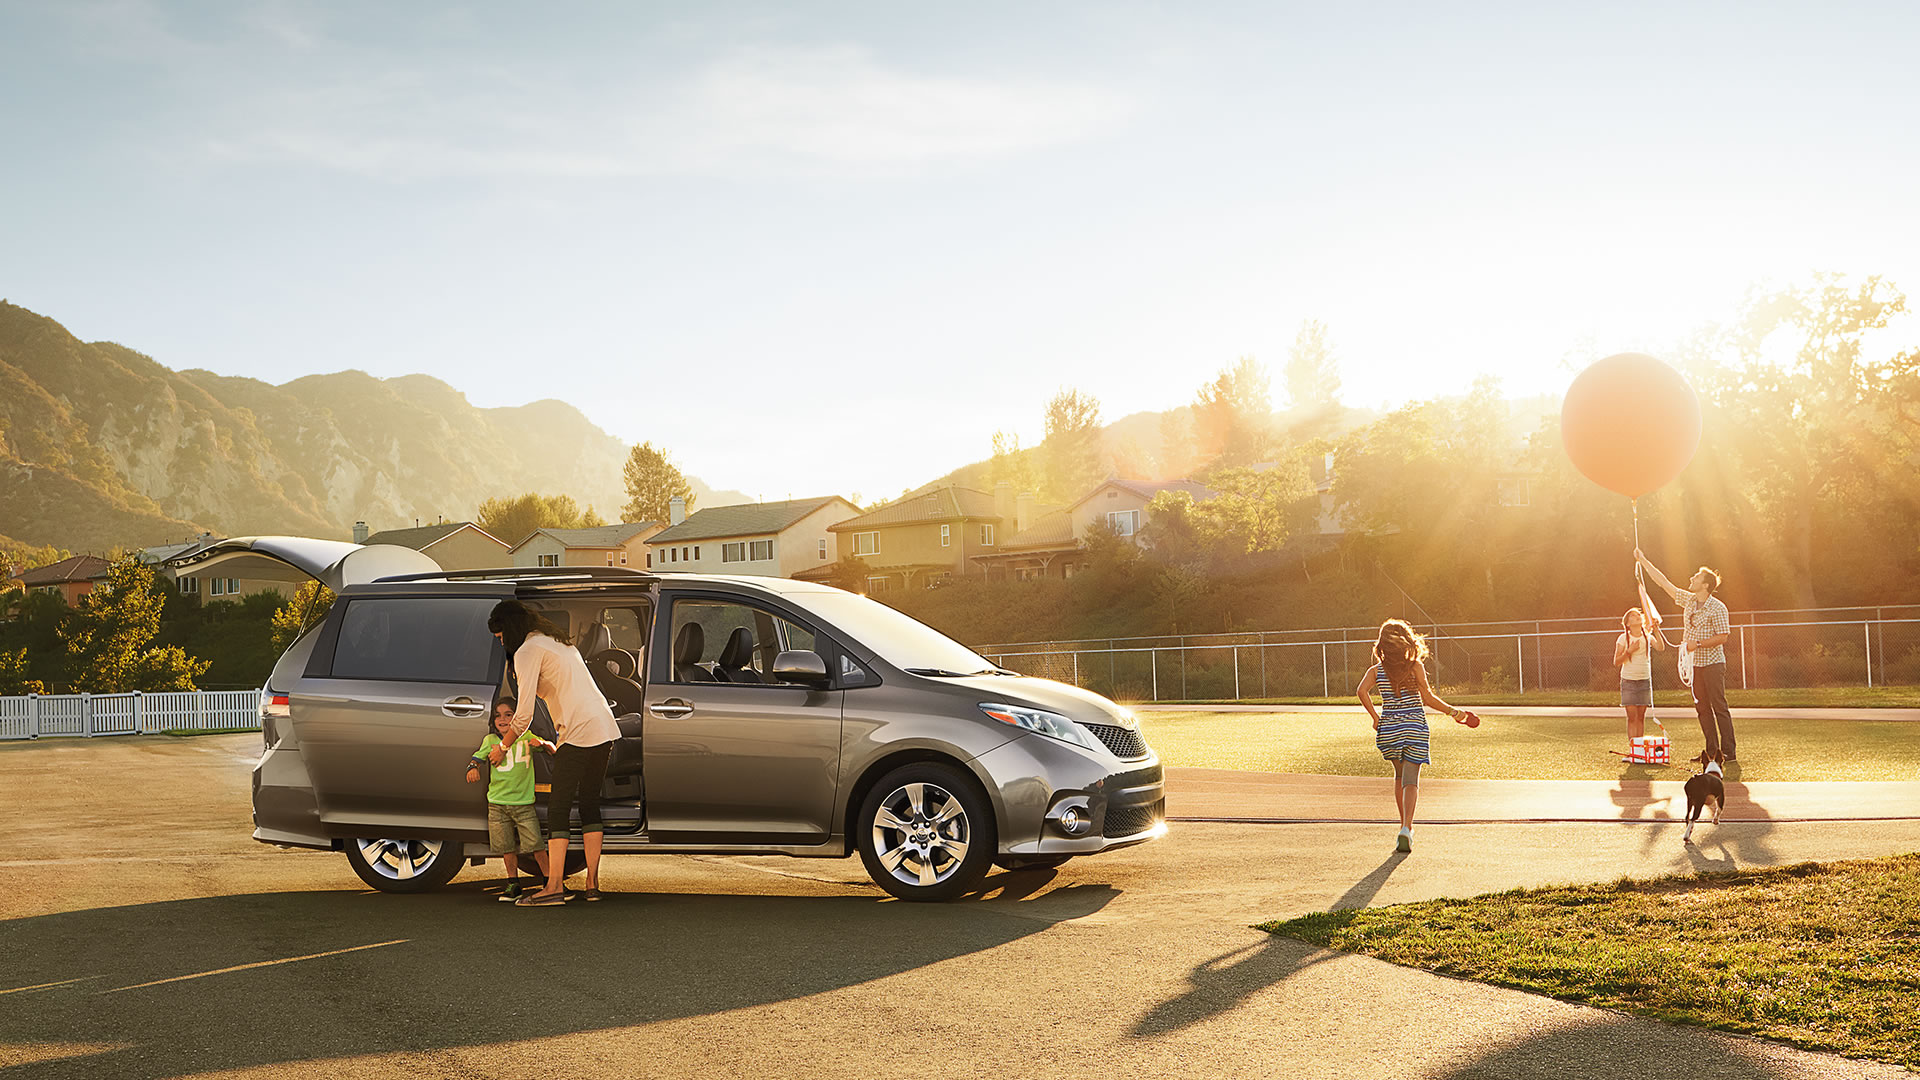 Is The Minivan Right For Your Family